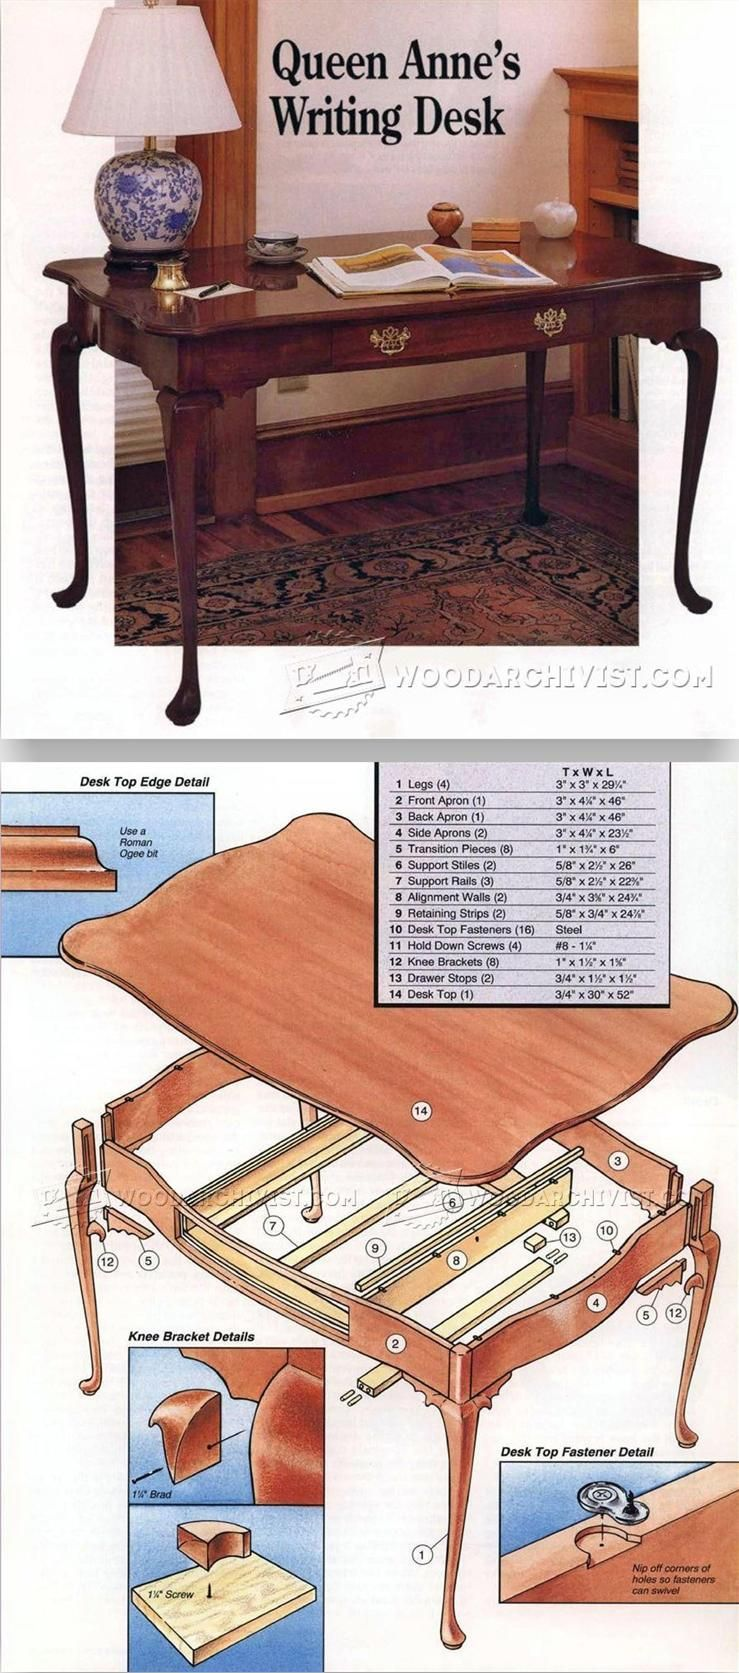 queen anne writing desk plans - furniture plans and projects